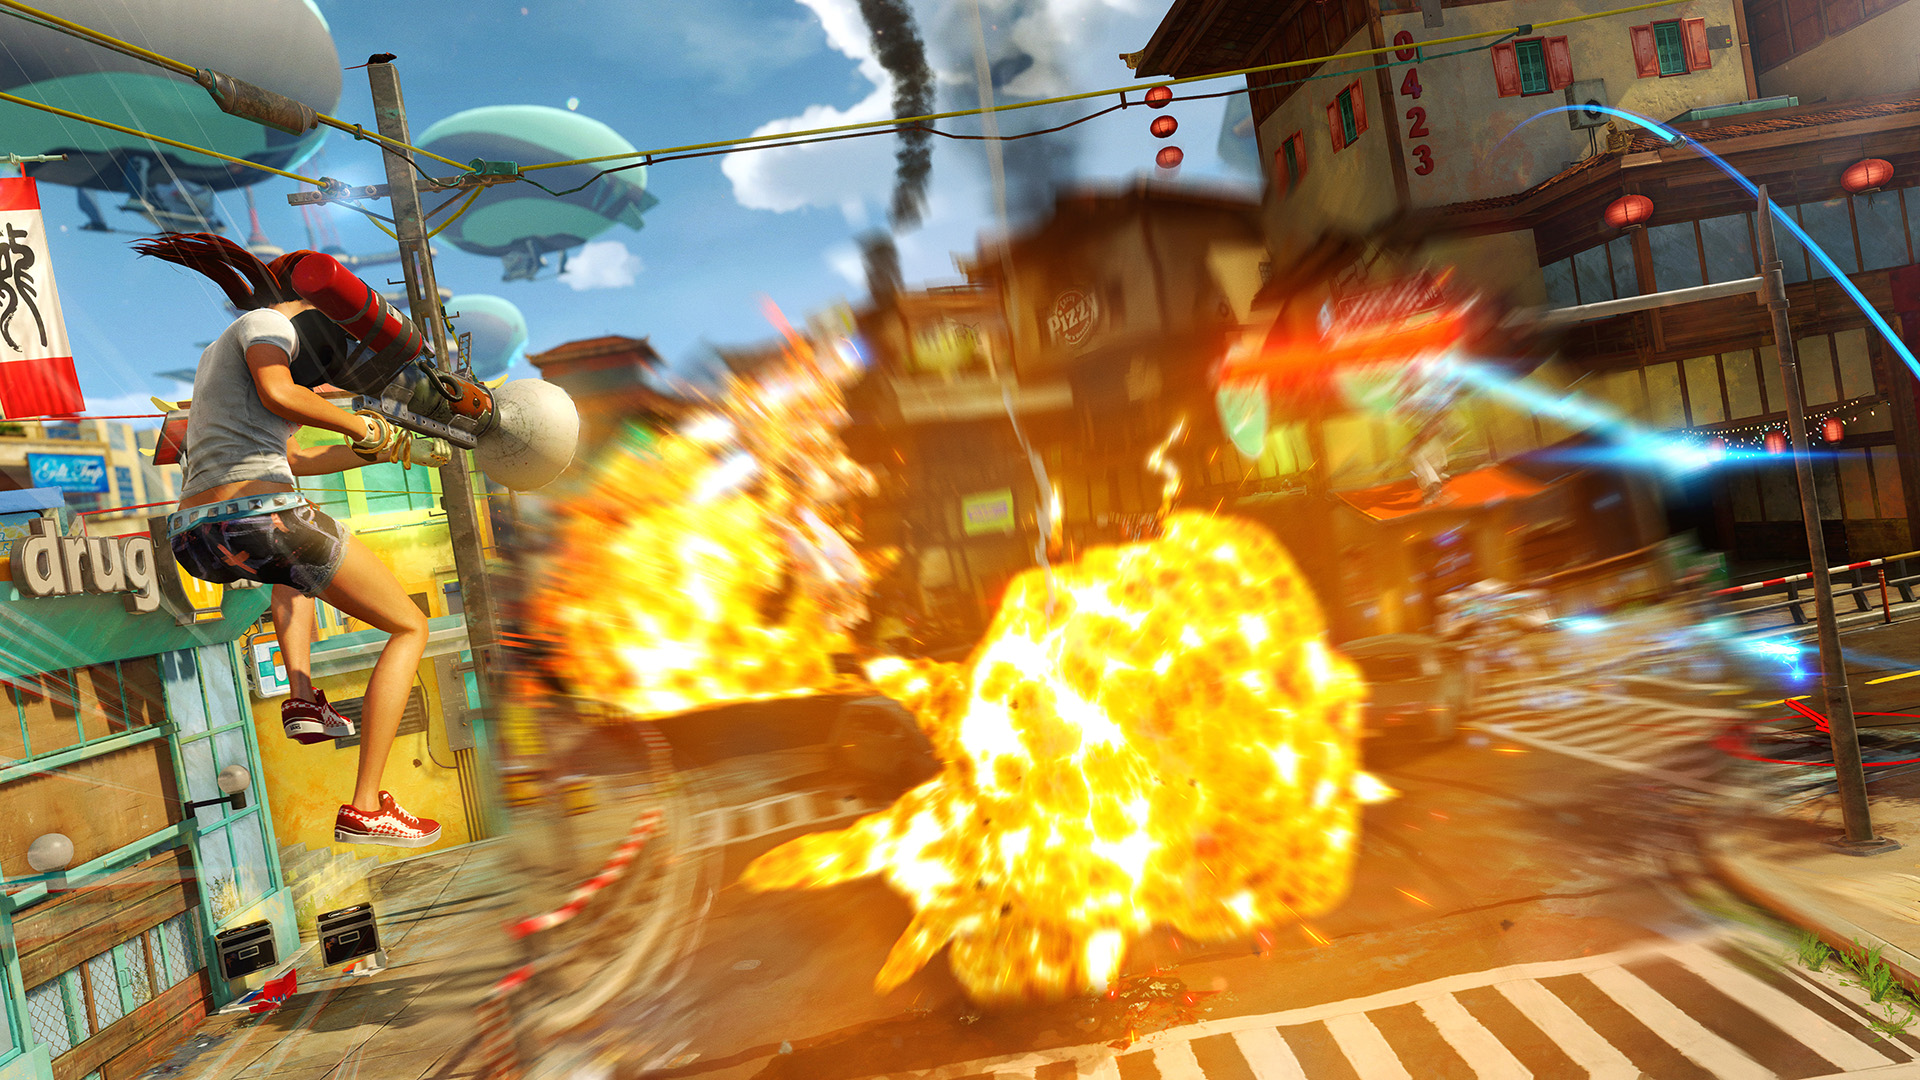 Sunset Overdrive coming to PC, complete with boxed retail edition